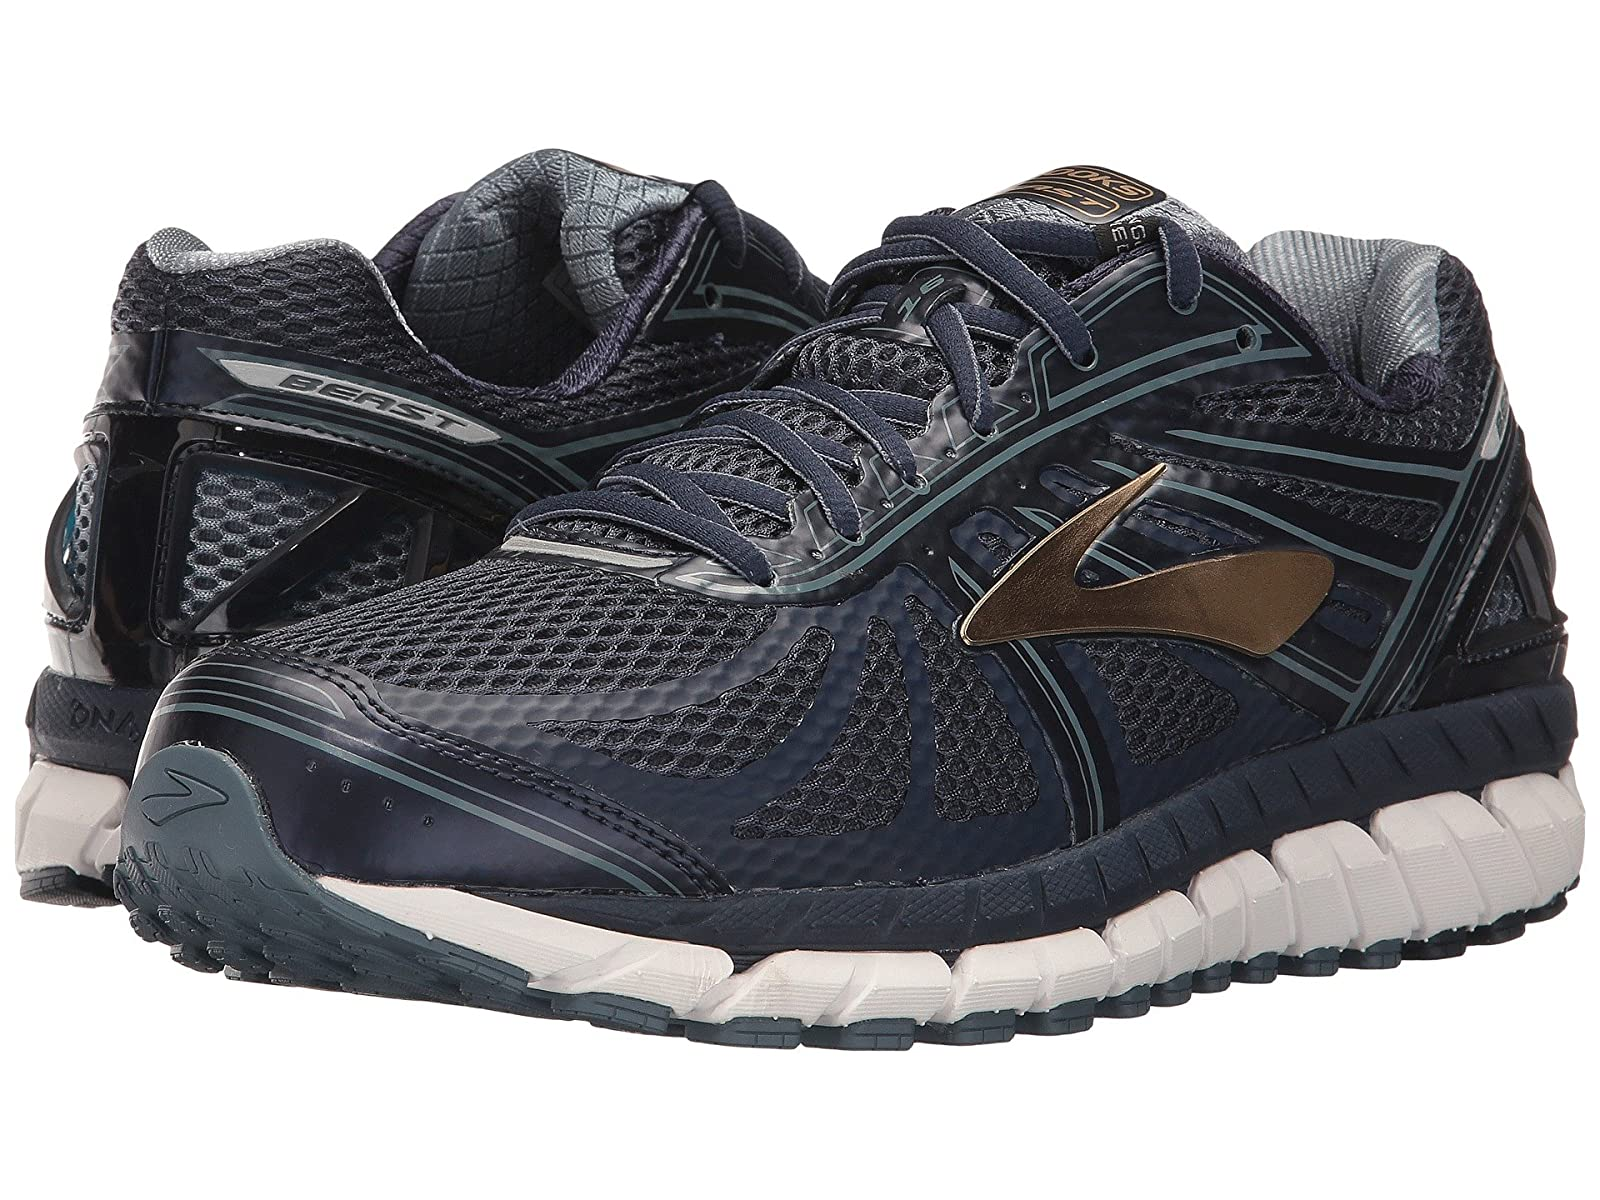 Brooks Beast '16Cheap and distinctive eye-catching shoes